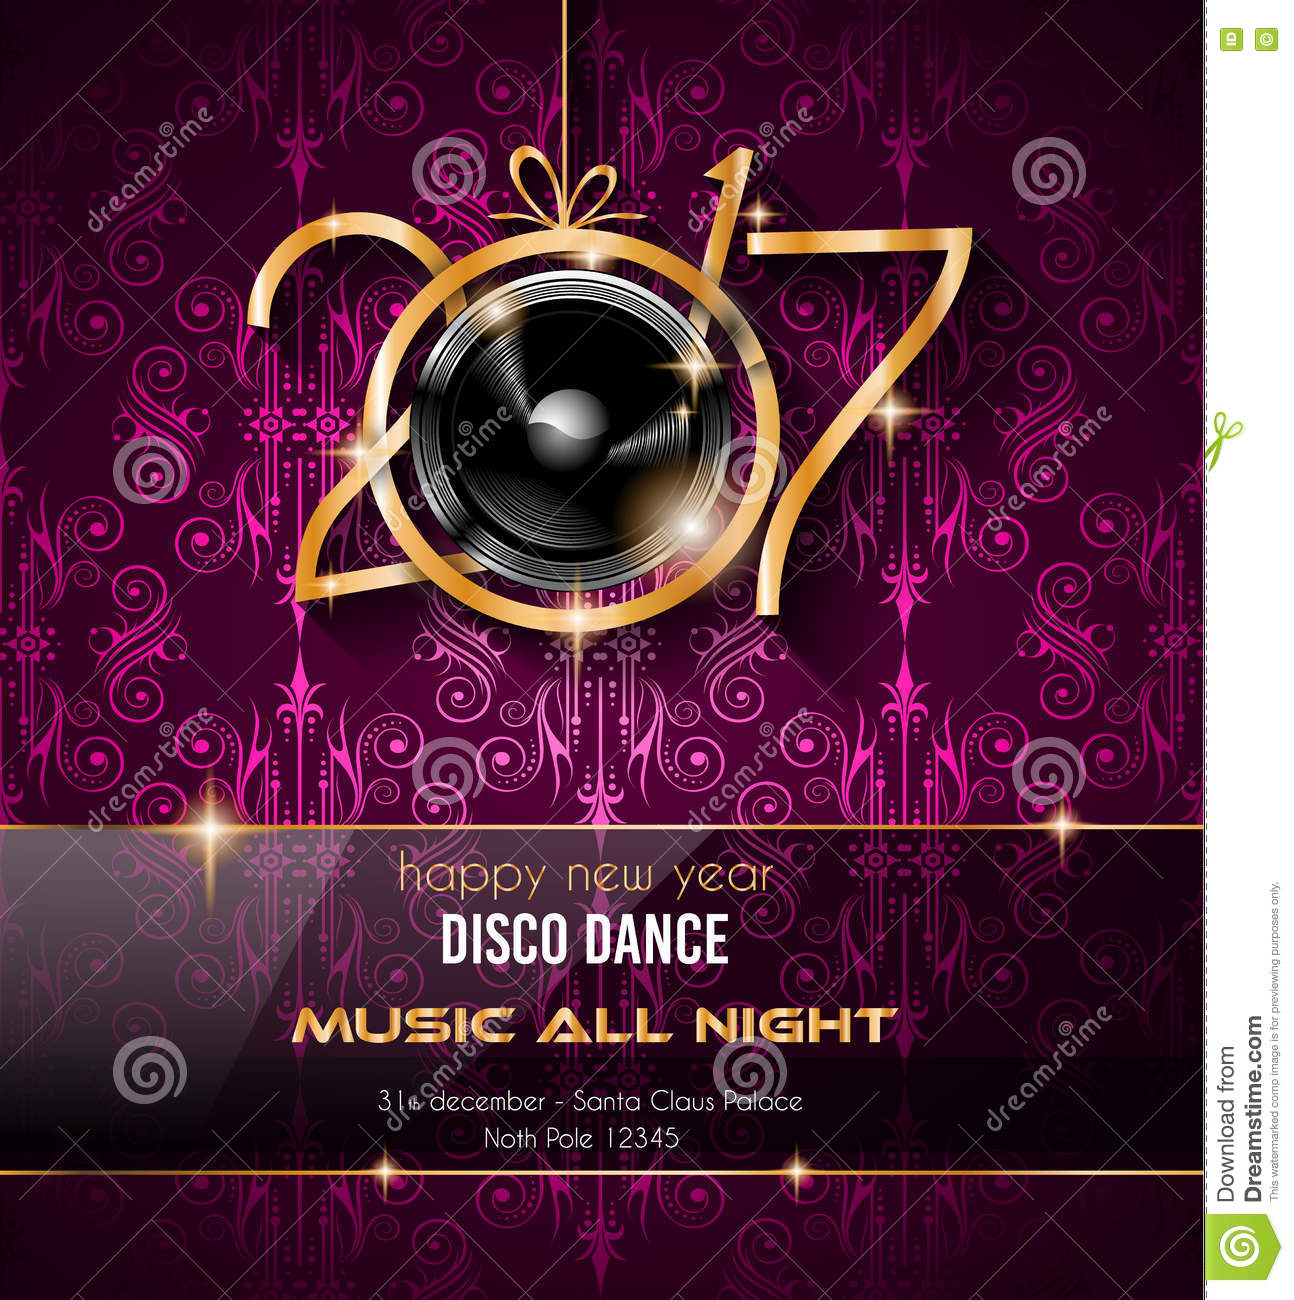 download 2017 happy new year disco party background for your flyers stock illustration illustration of